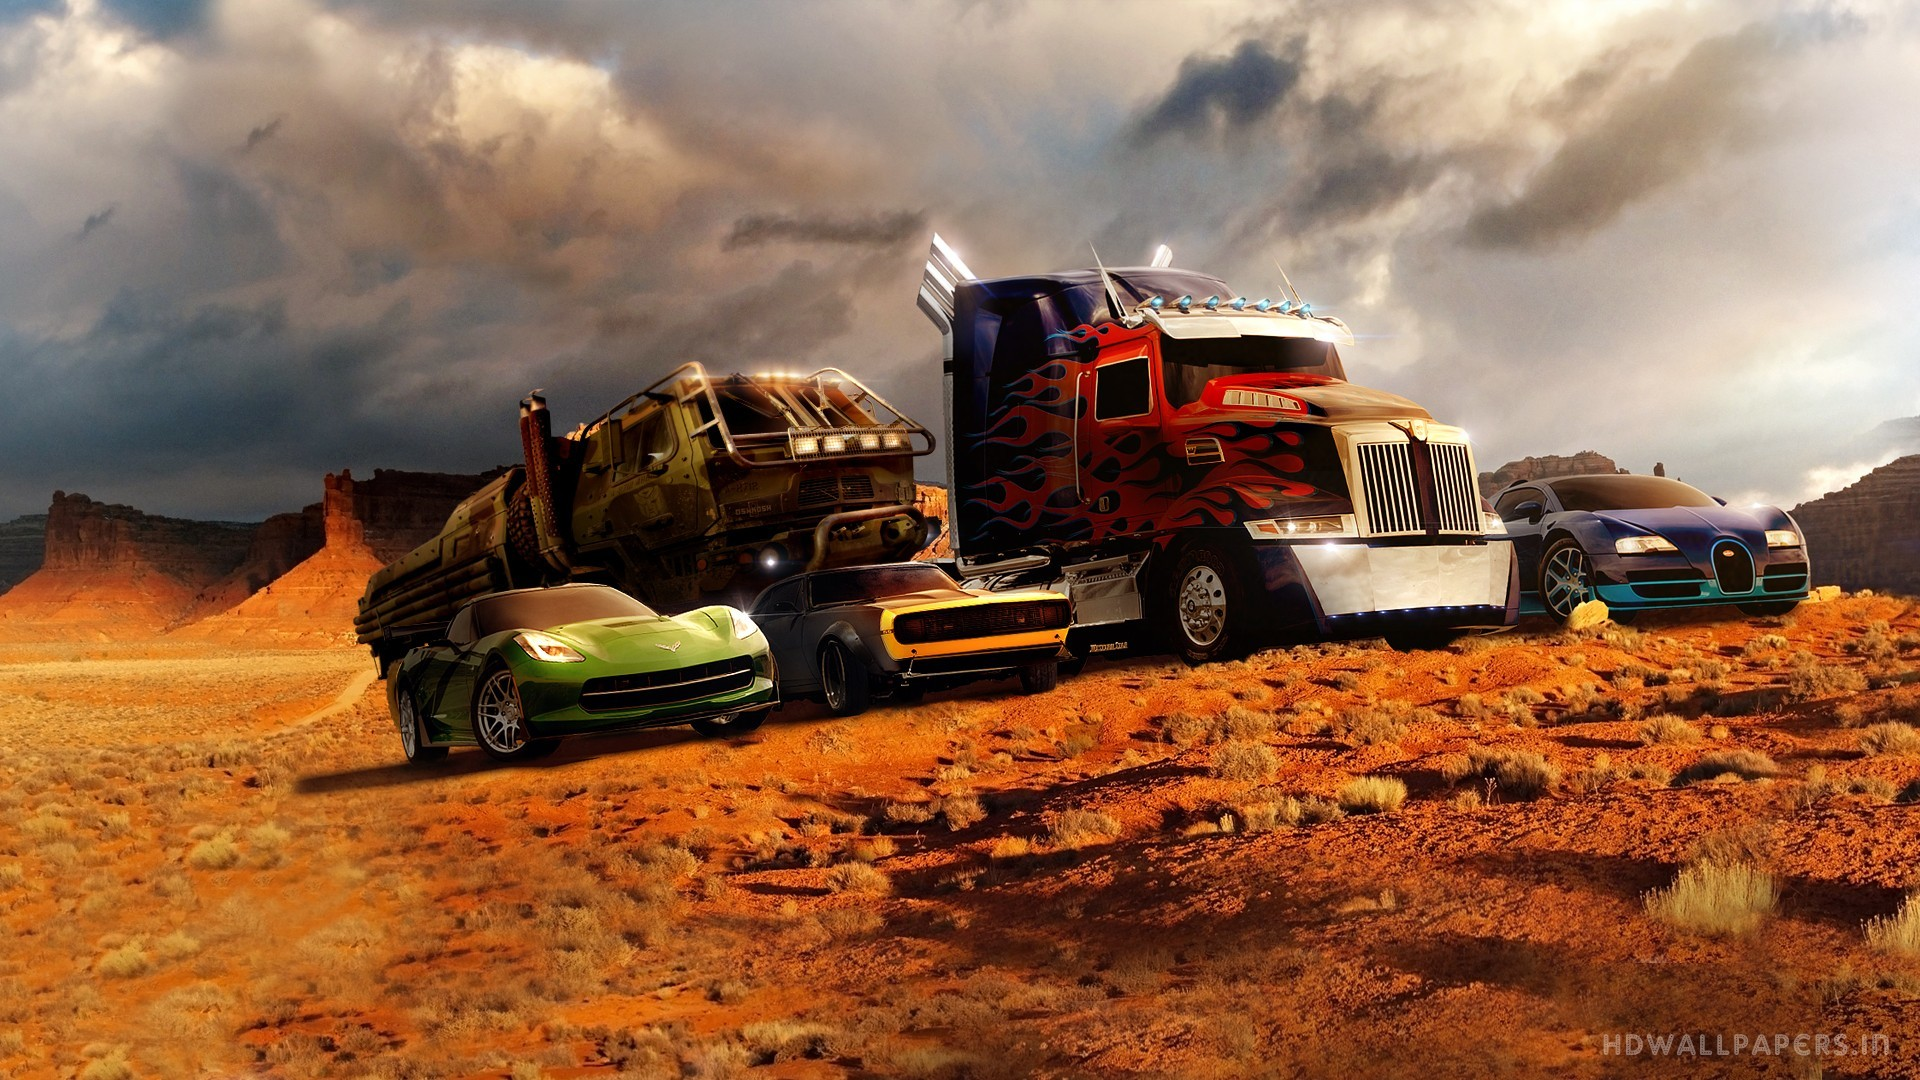 Res: 1920x1080, Transformers 4 Autobots Wallpaper